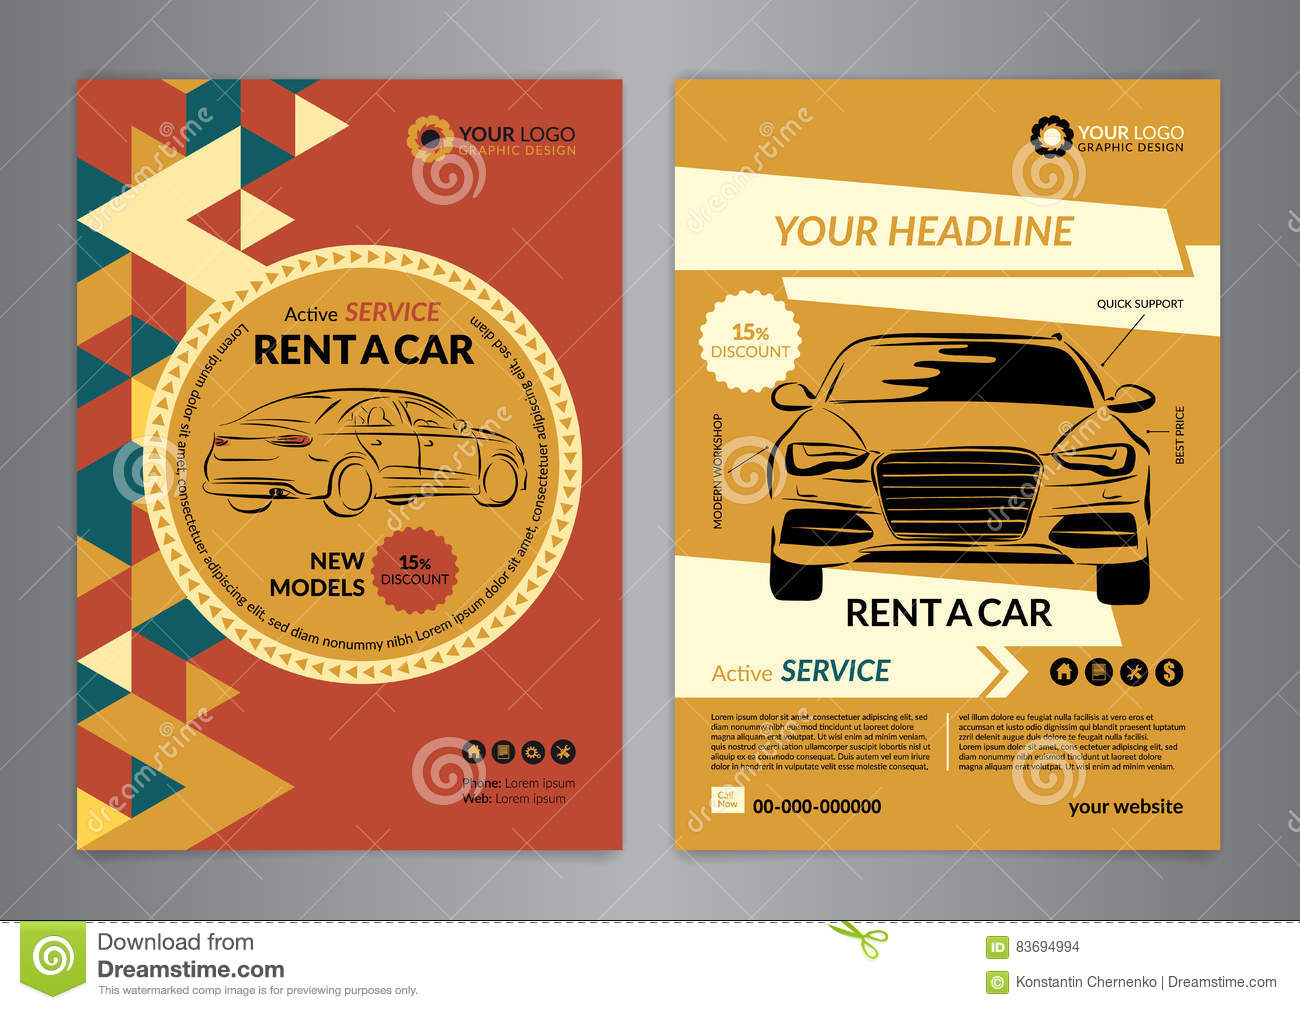 vehicle service flyer template stock vector image  rent a car business flyer template auto service brochure templates stock images